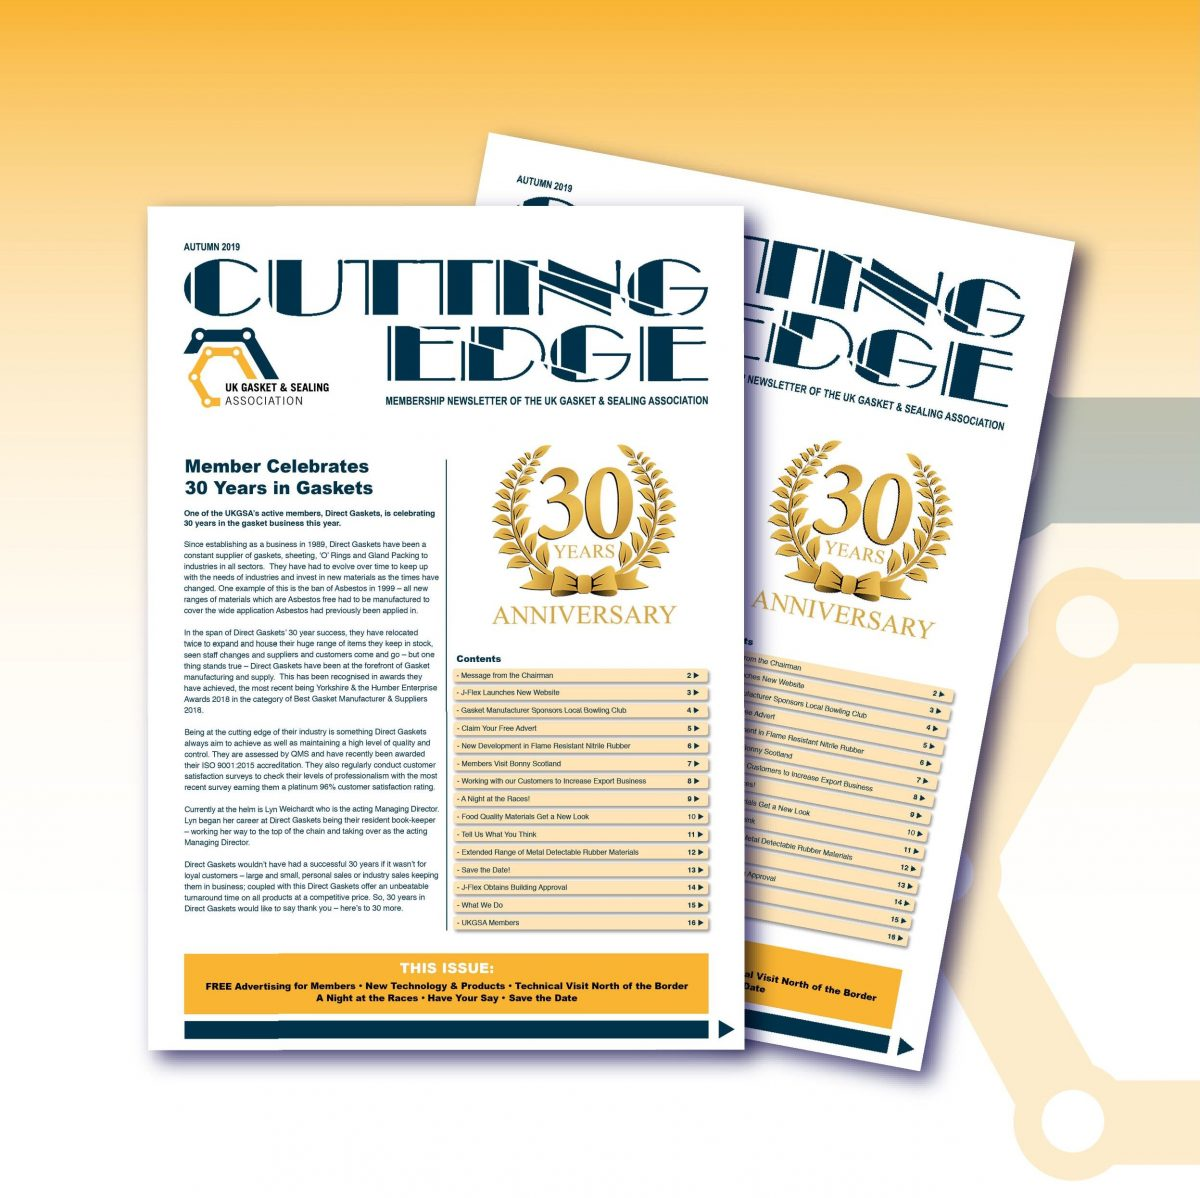 Latest issue of Cutting Edge